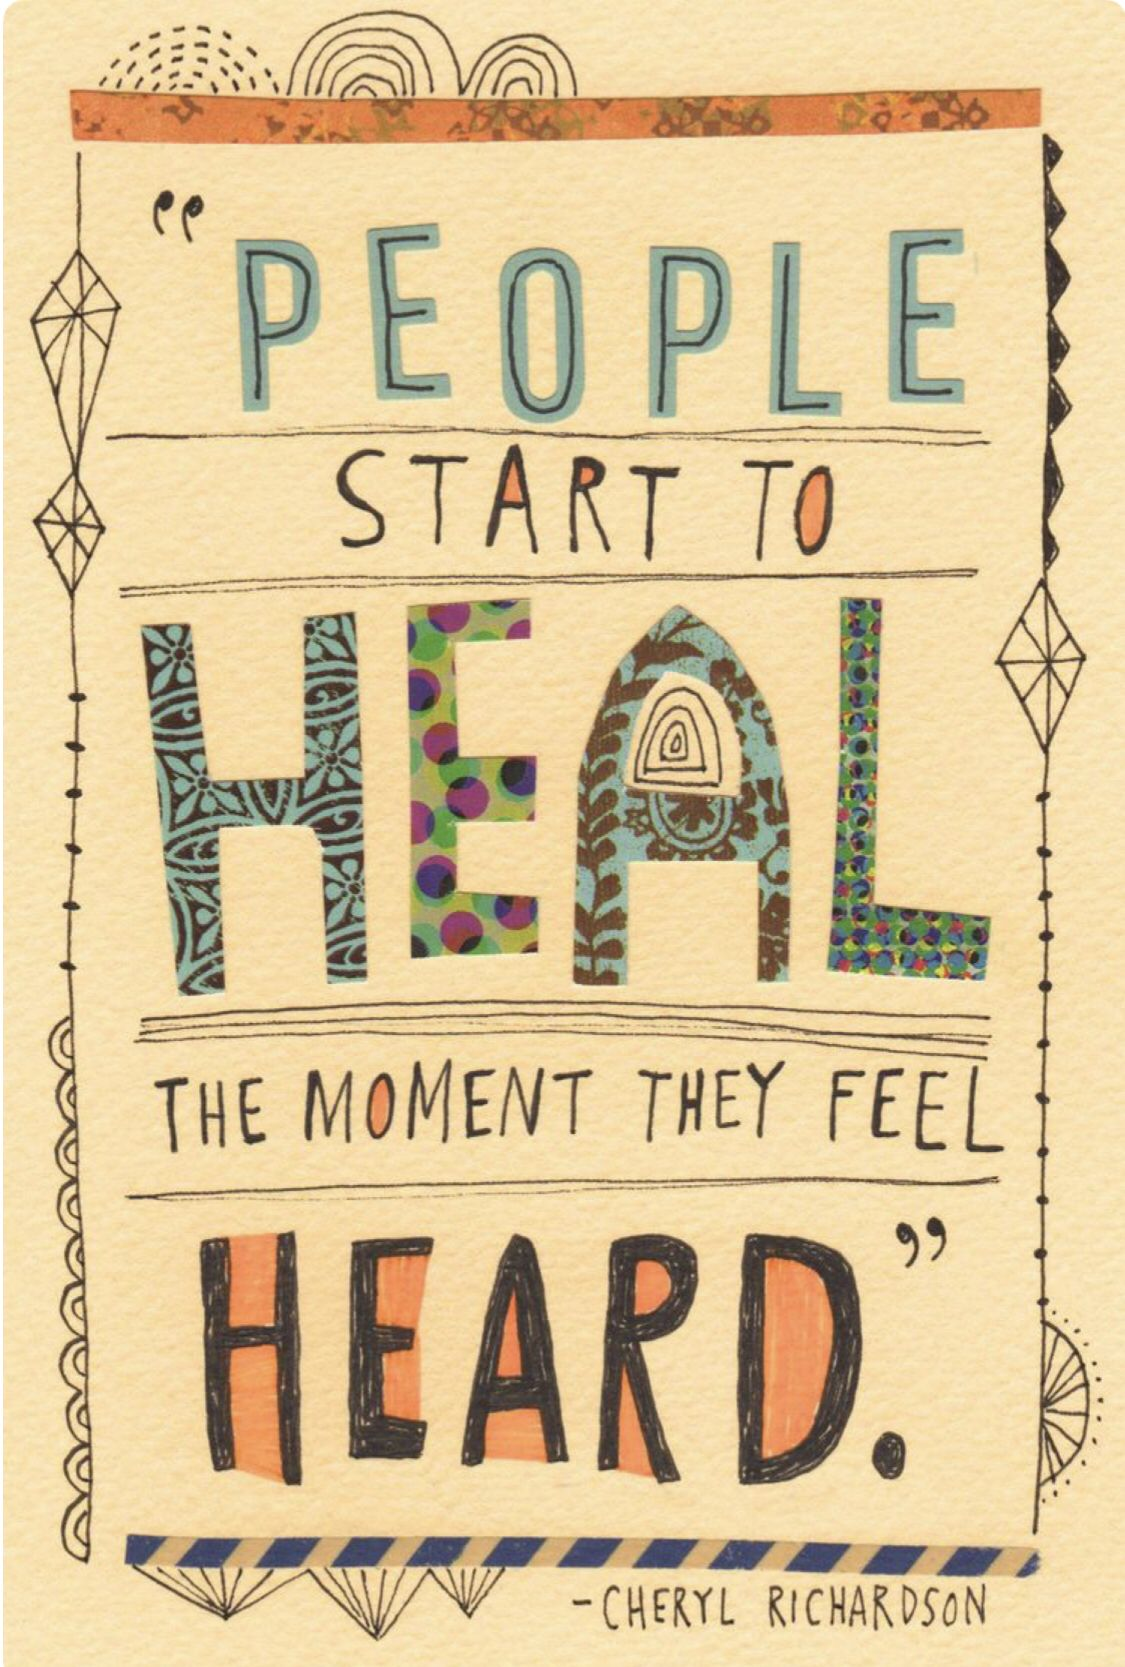 People start to heal when they feel heard ❤️